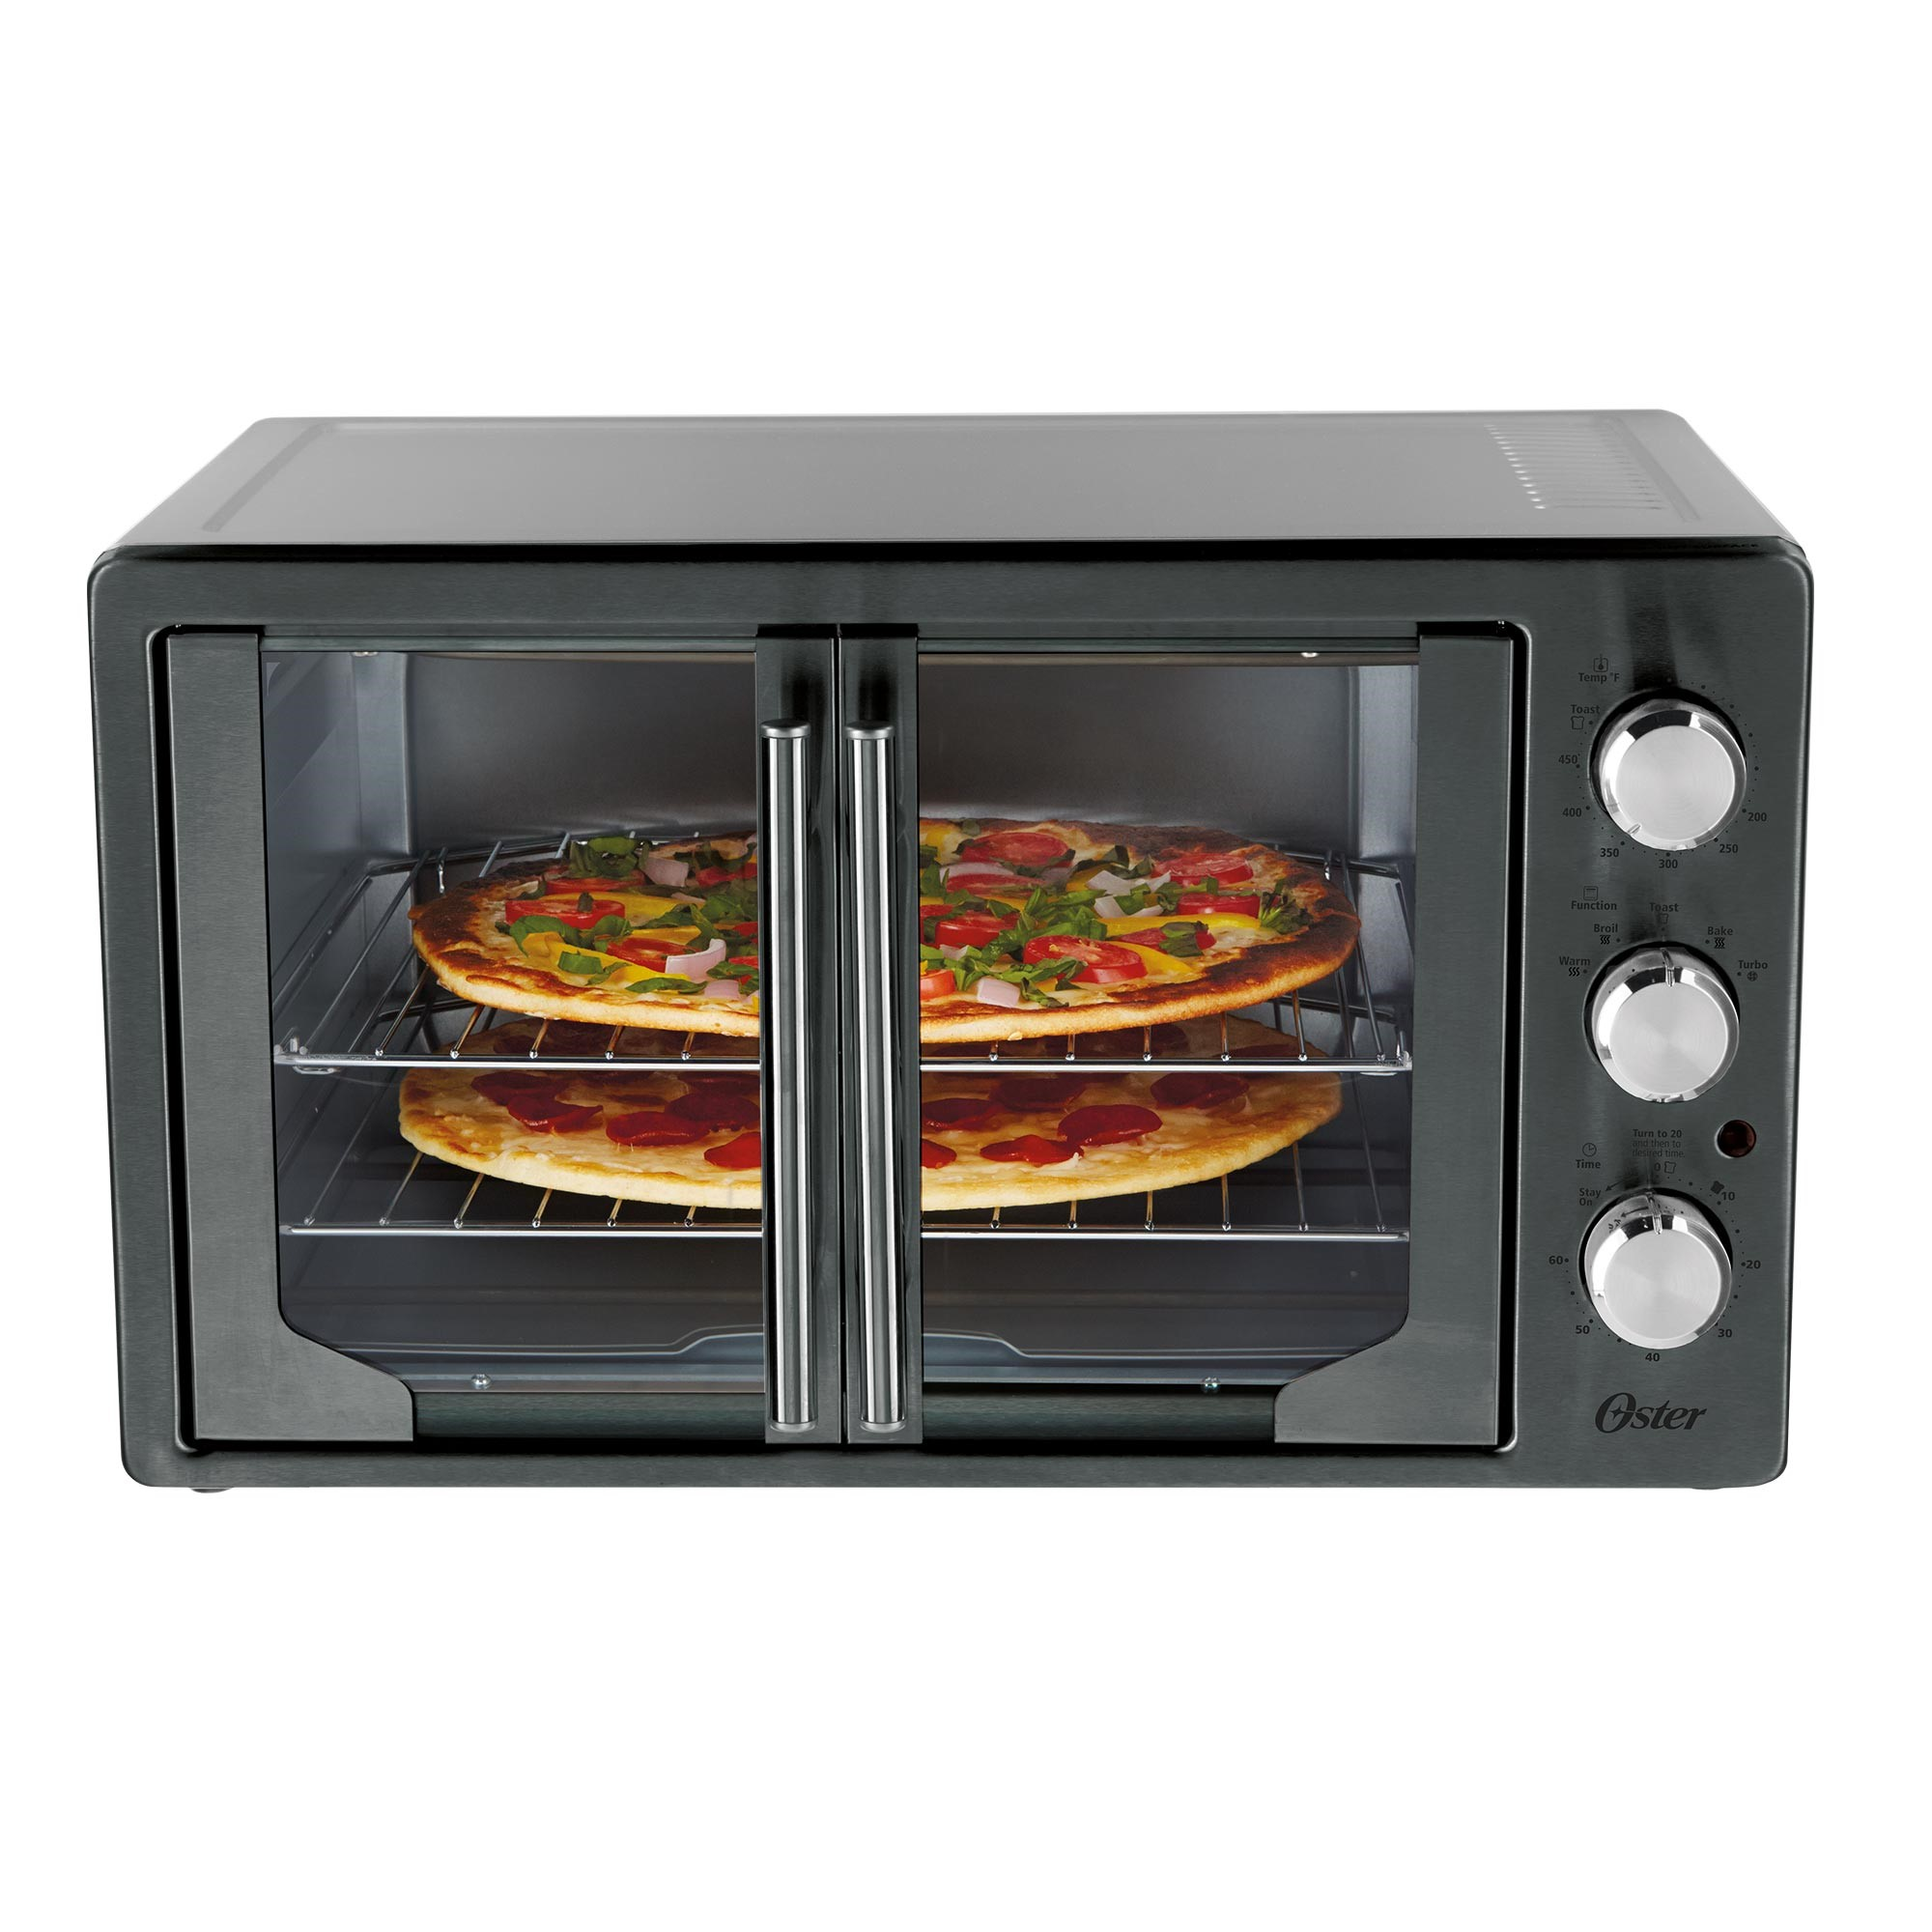 Oster Convection Countertop Oven Reviews Oster Digital Metallic Charcoal French Door Oven With Convection